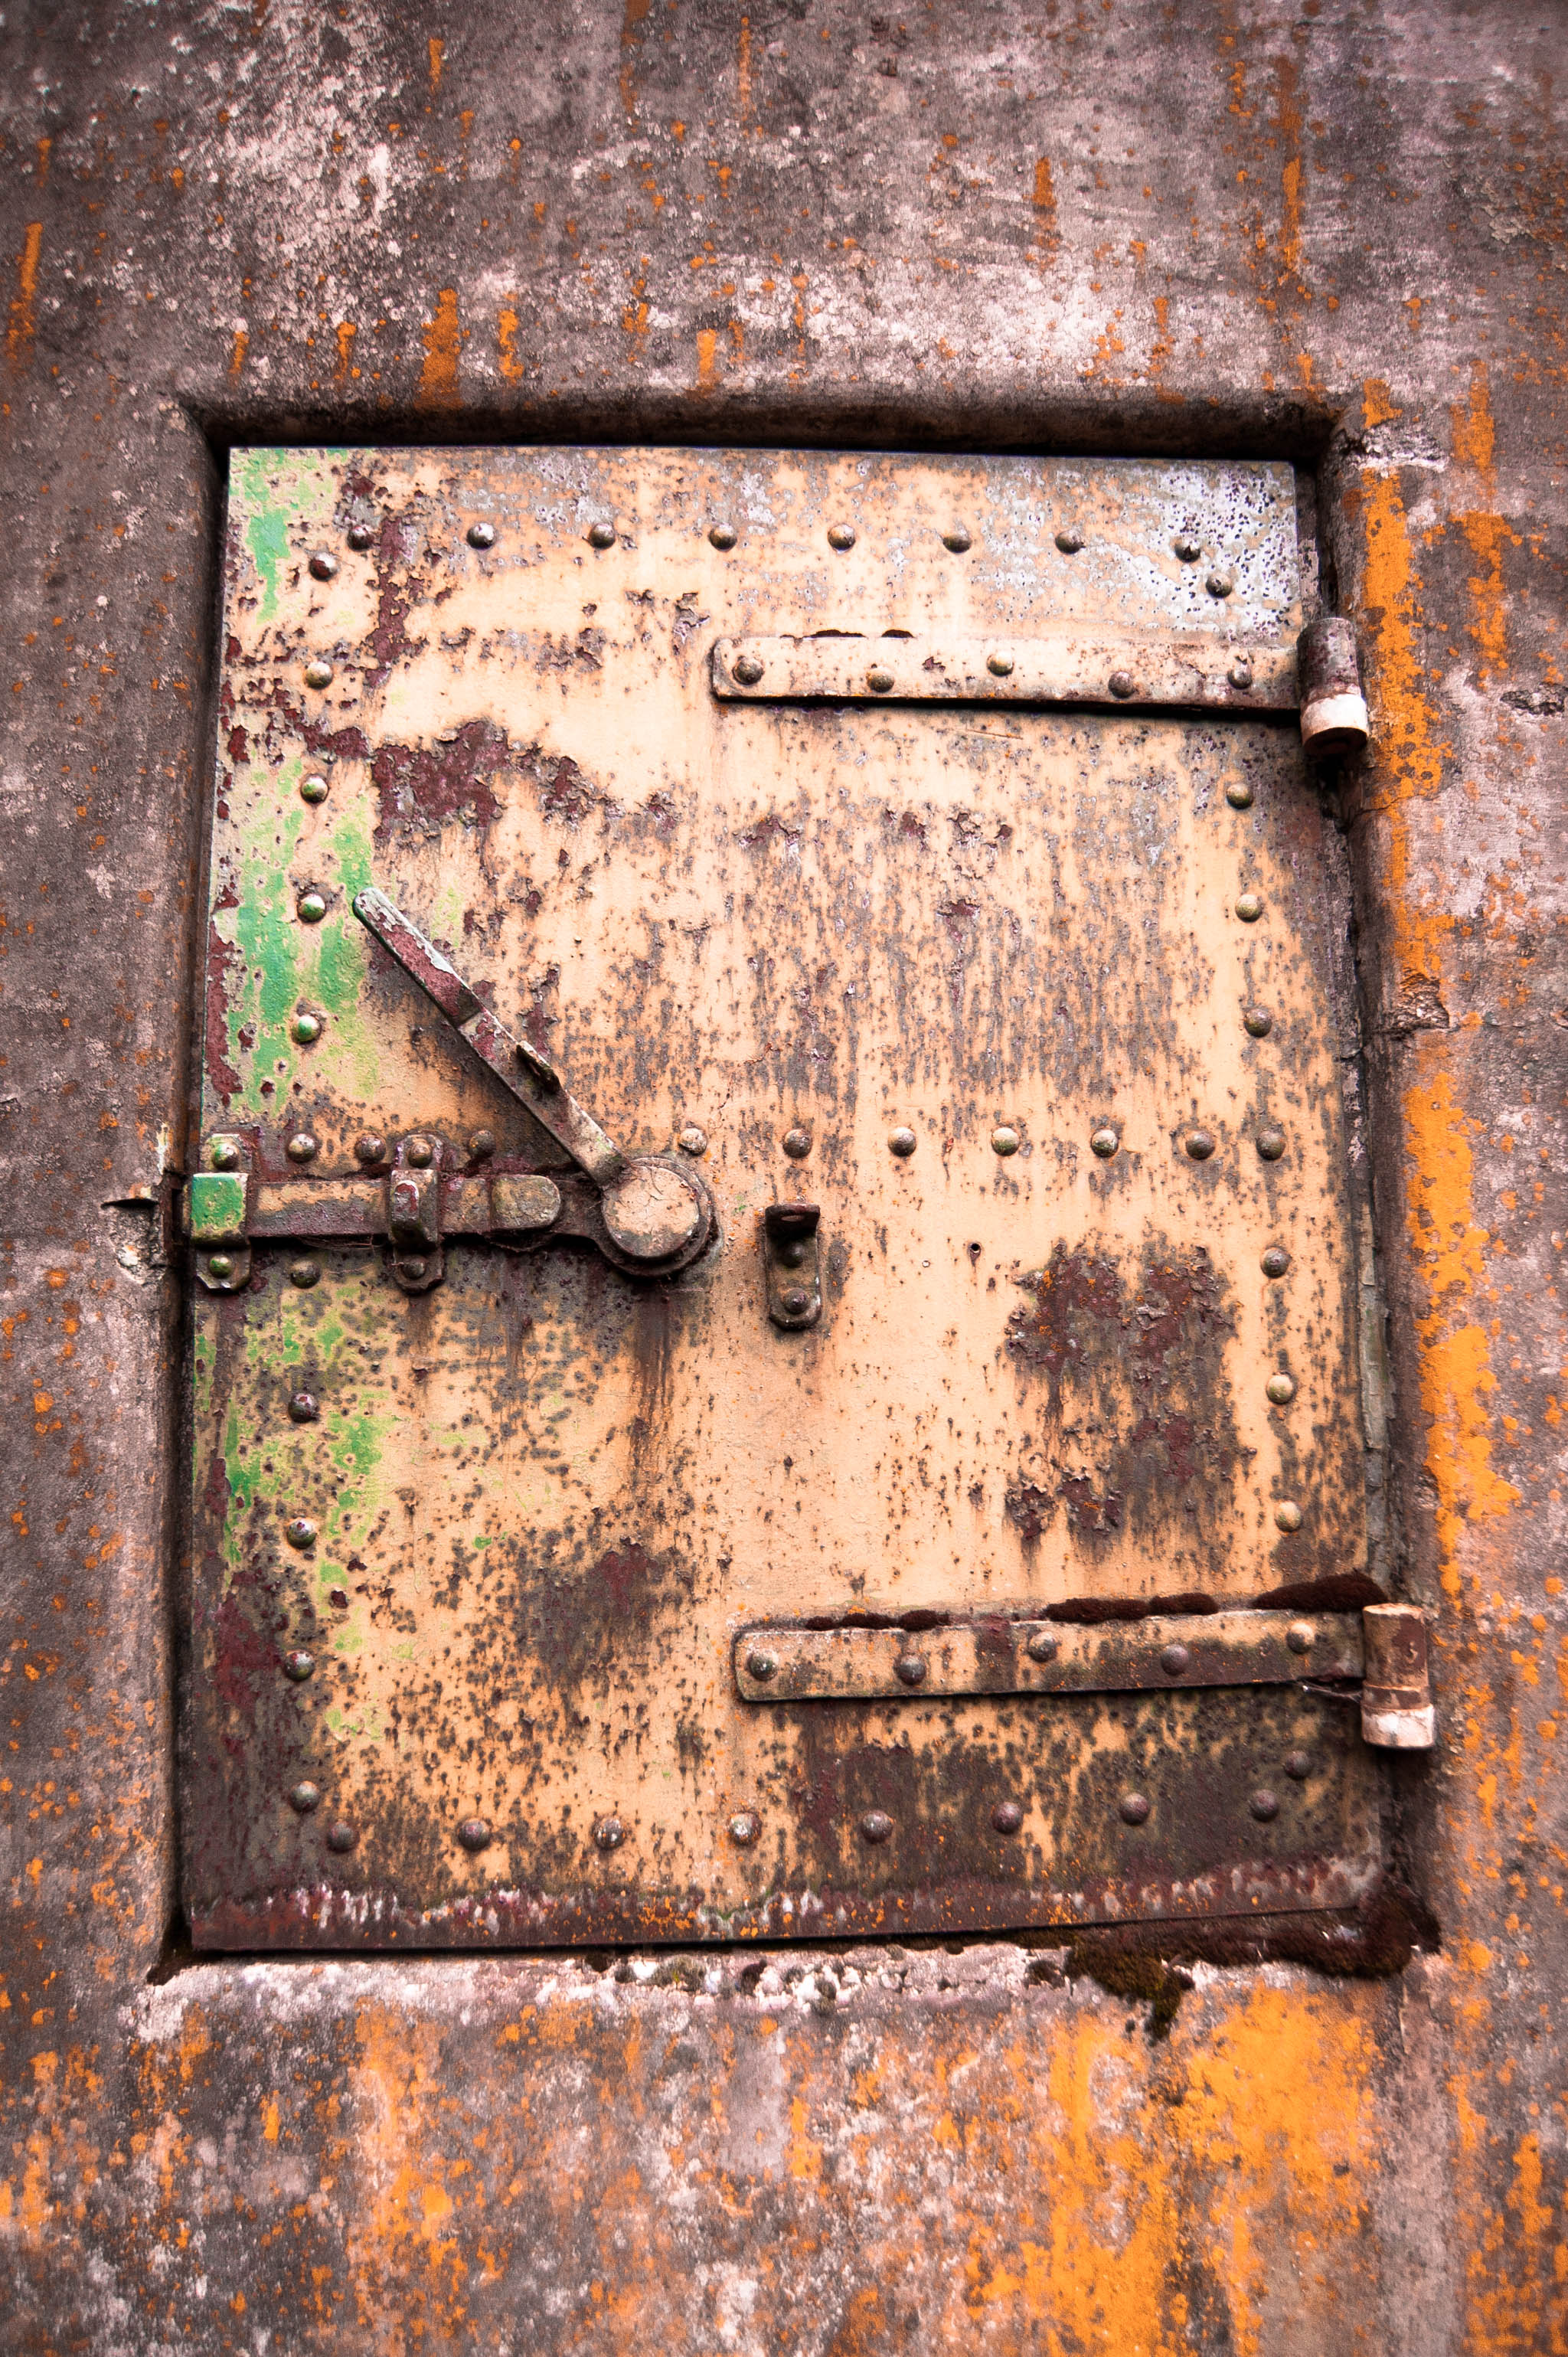 industrial rusty door